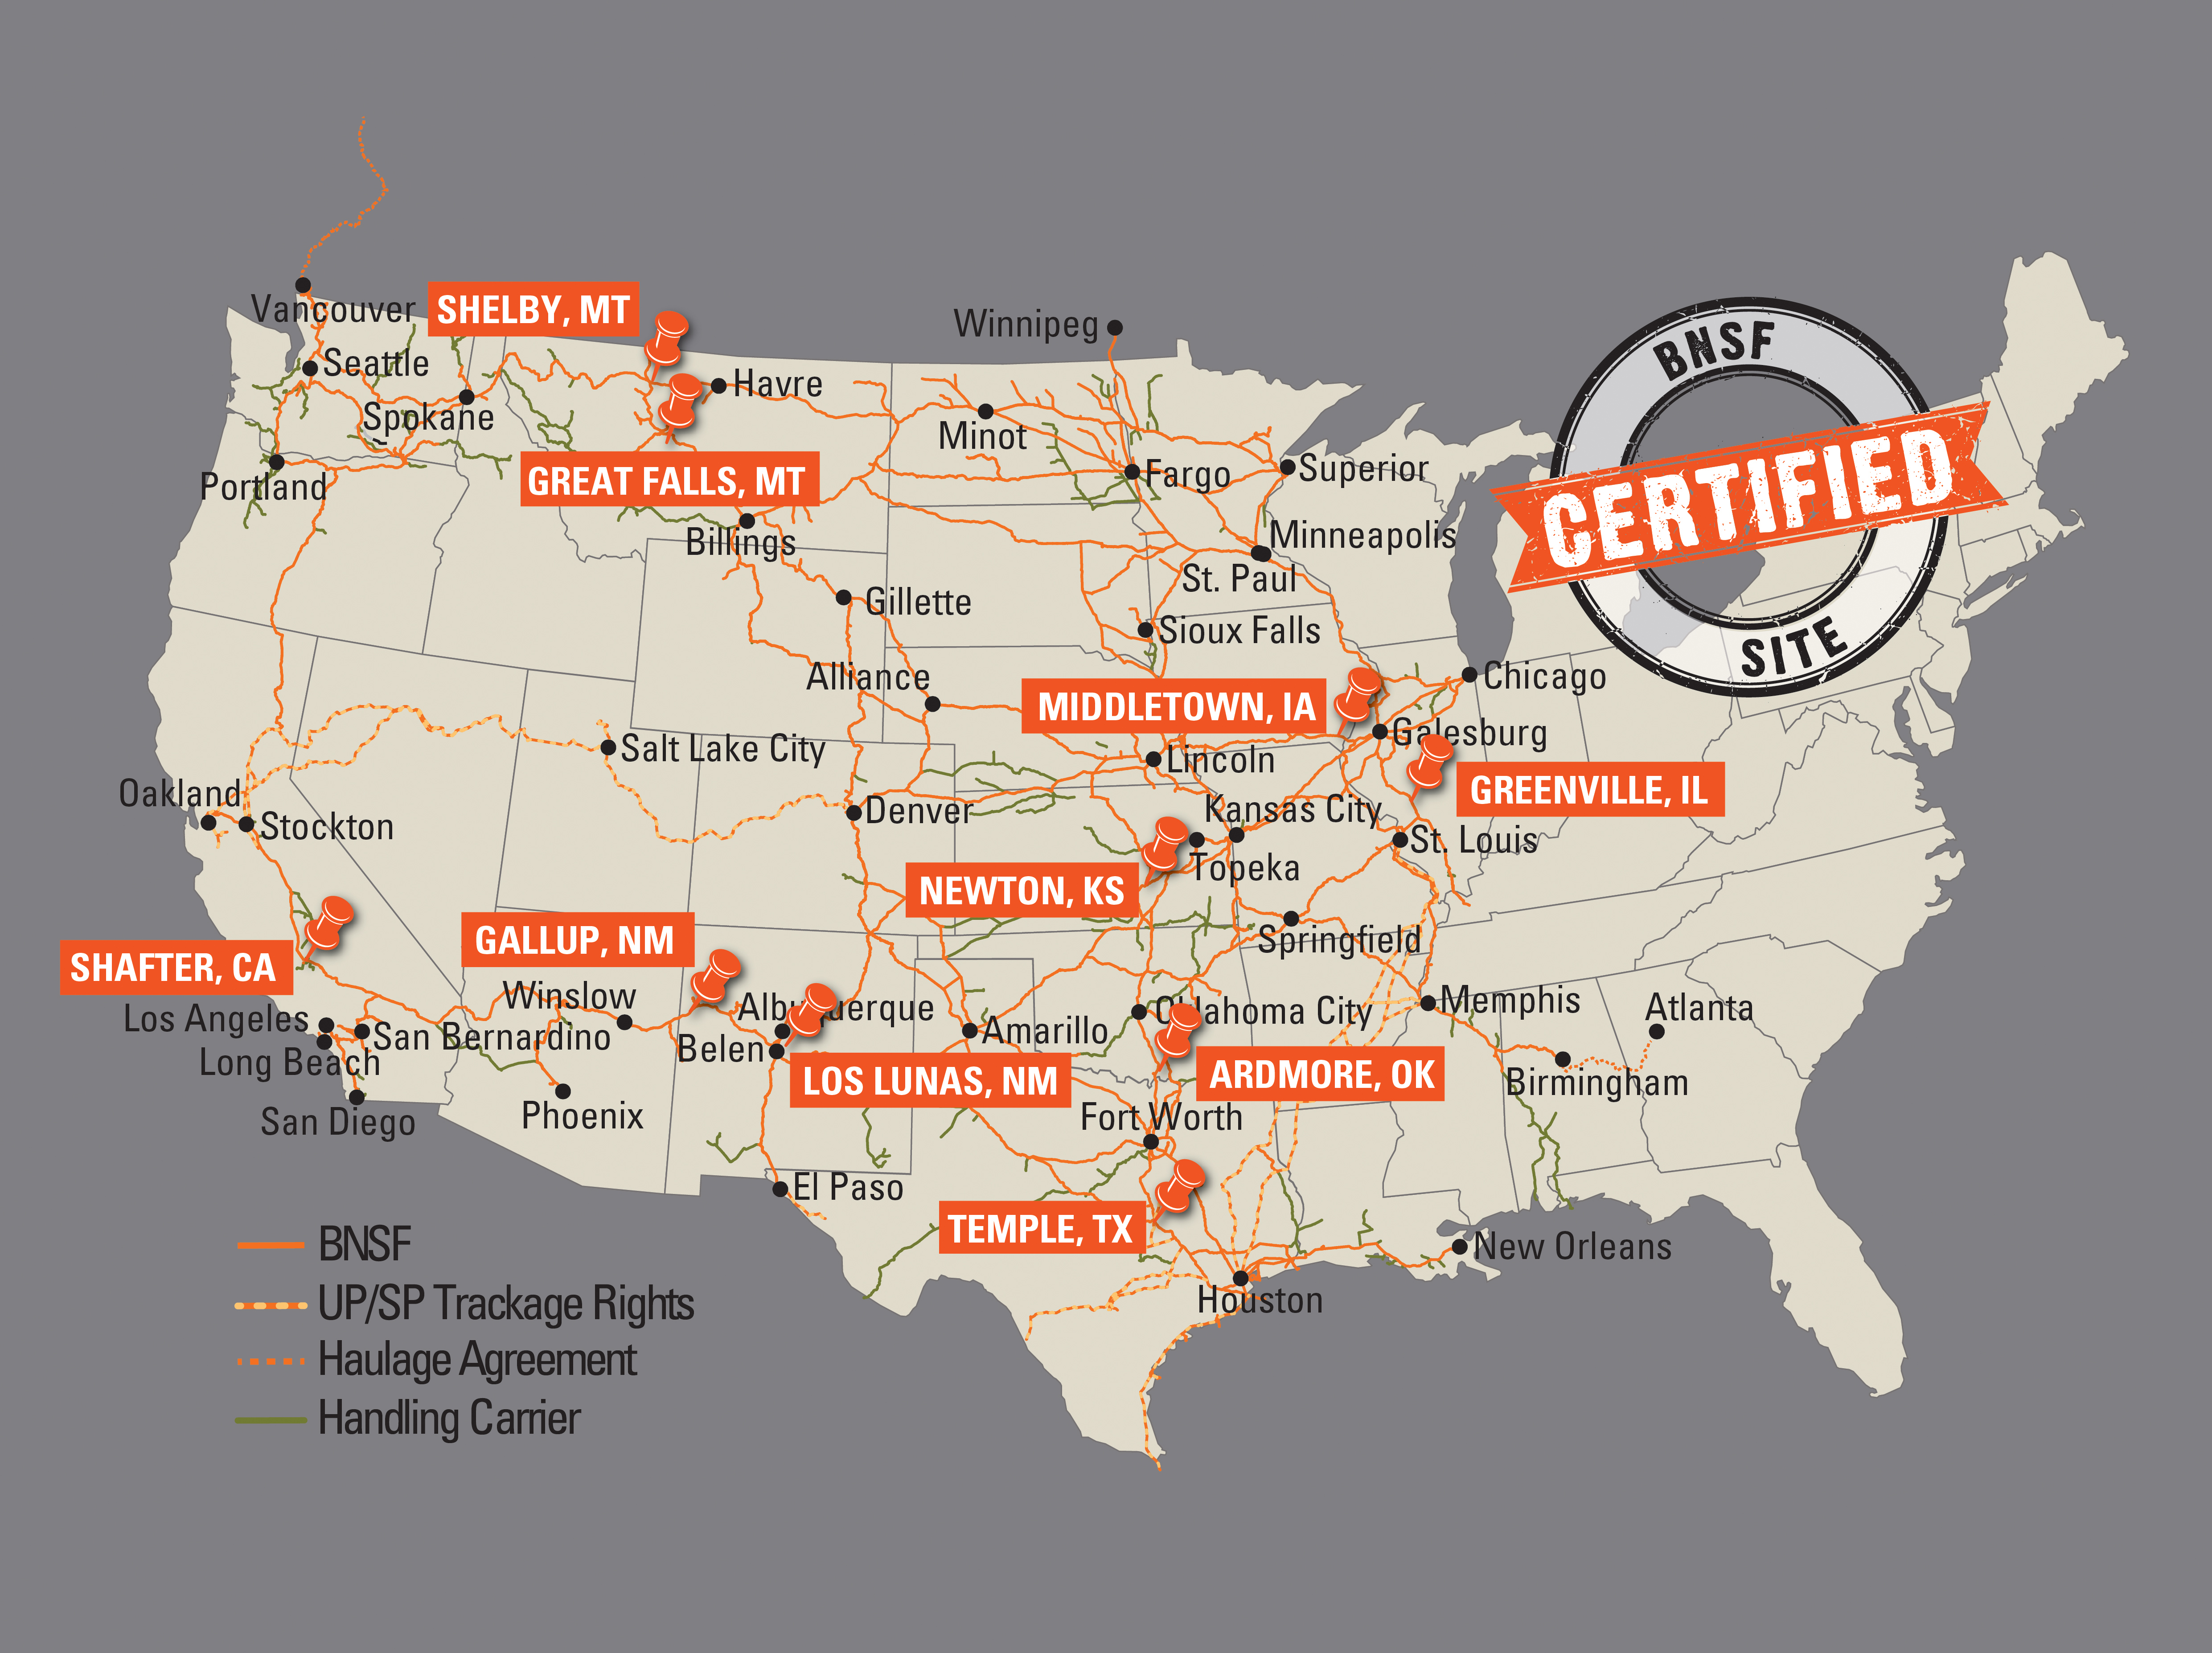 BNSF Railway Announces Certified RailServed Sites For - Bnsf railway us map